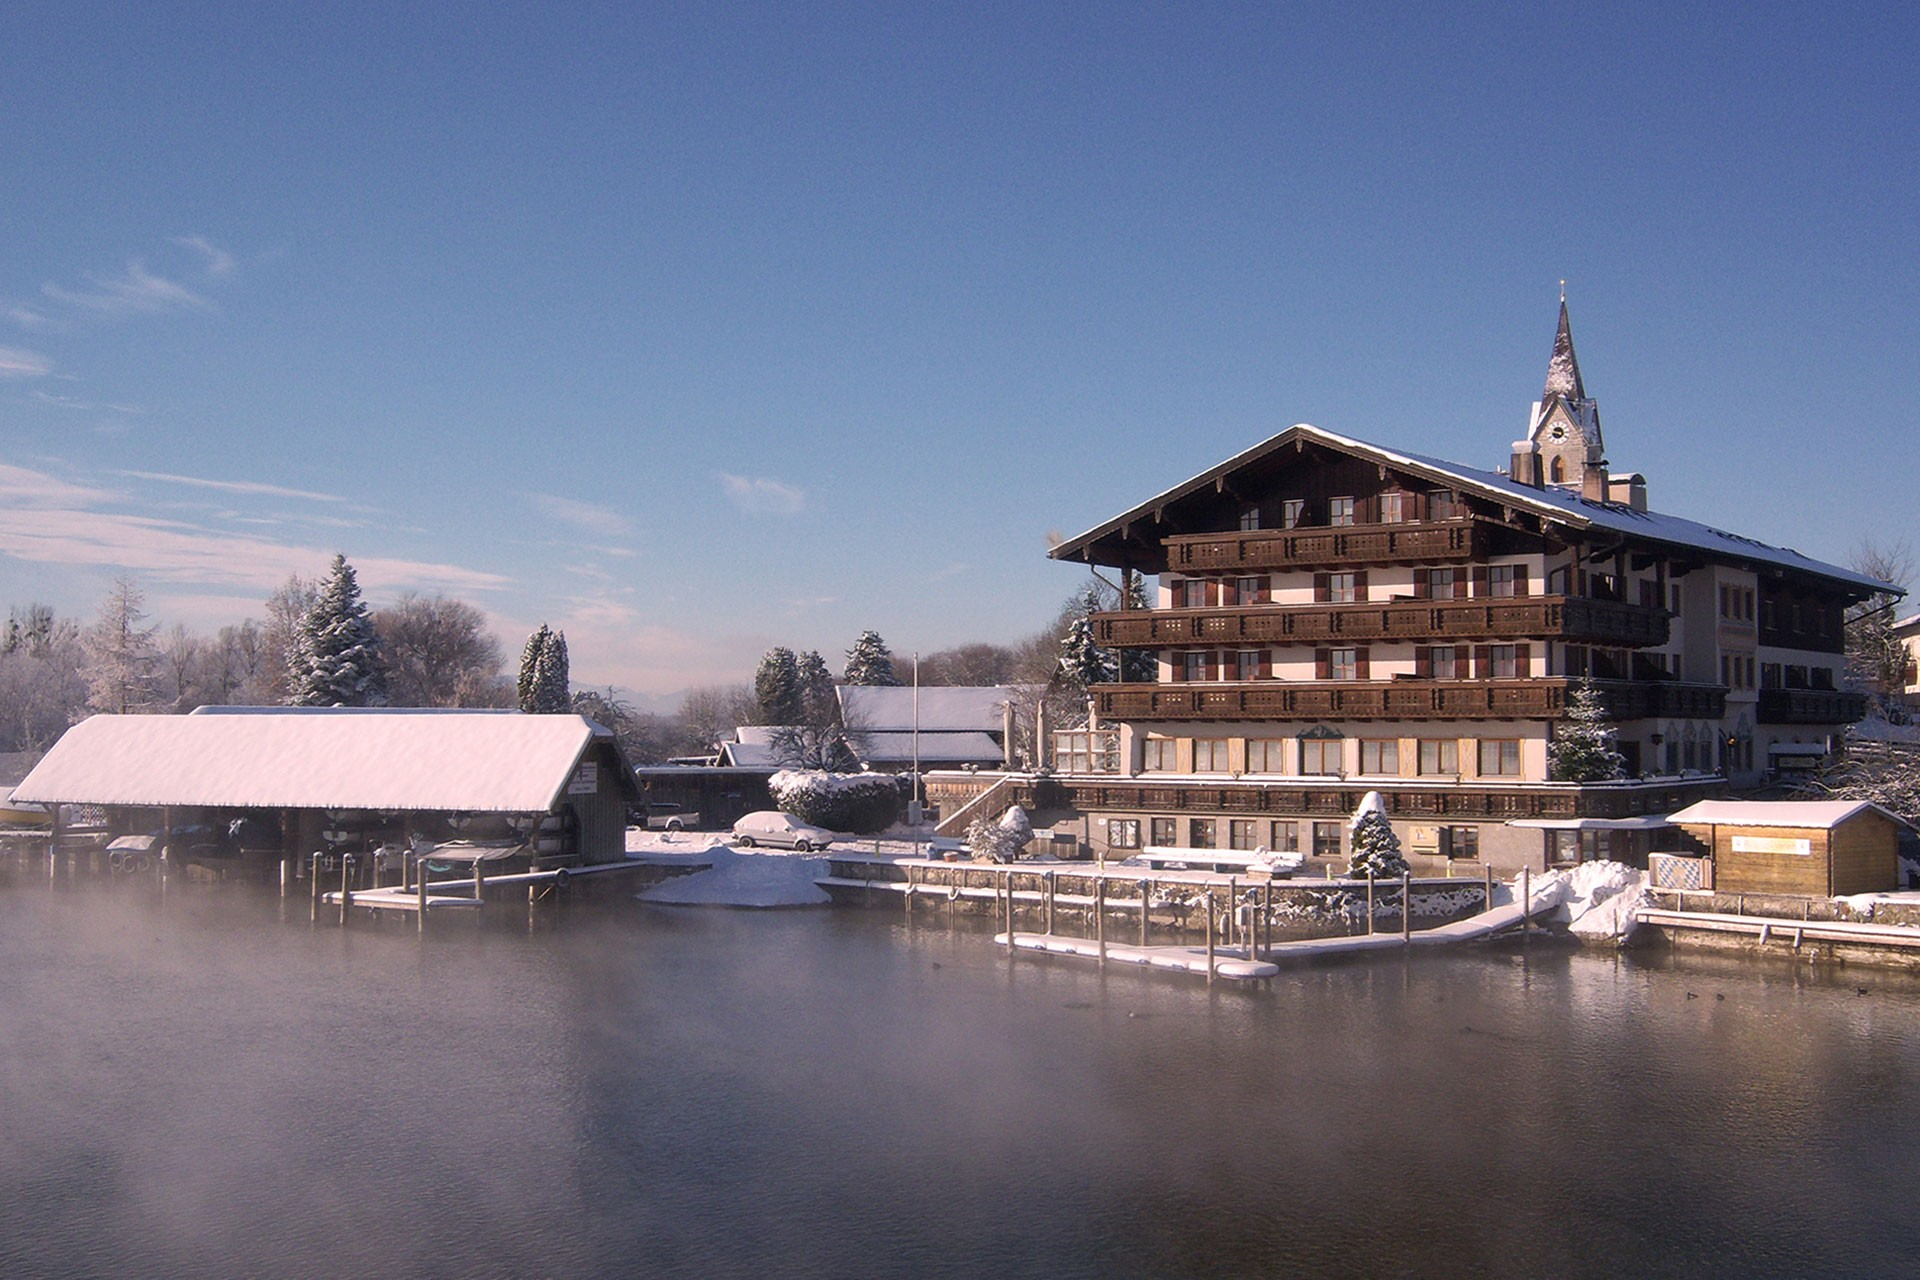 SeeHotel Wassermann am Chiemsee im Winter